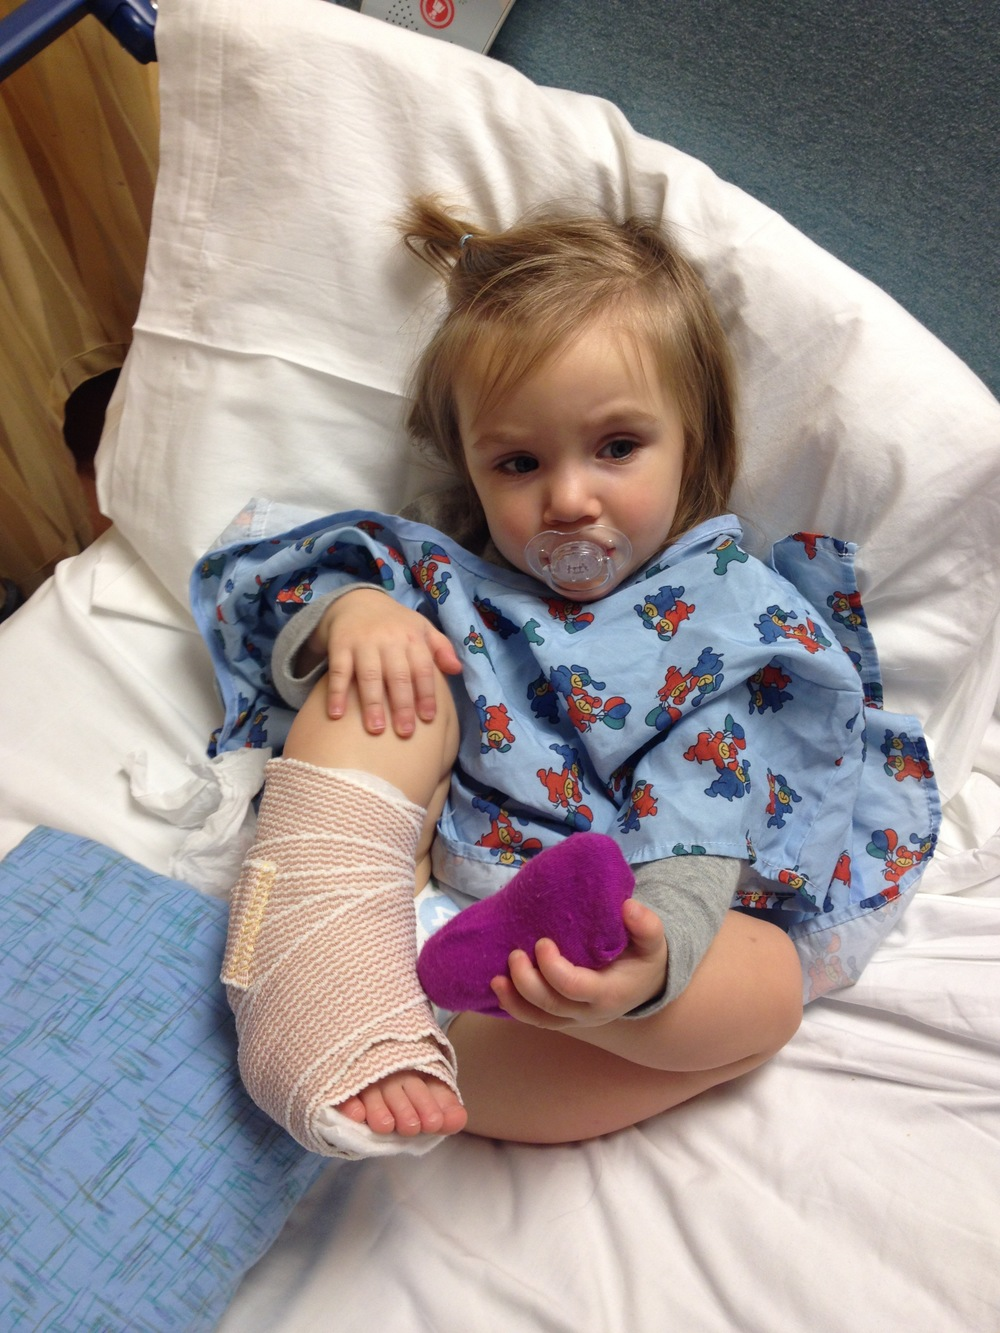 Toddler with a broken leg